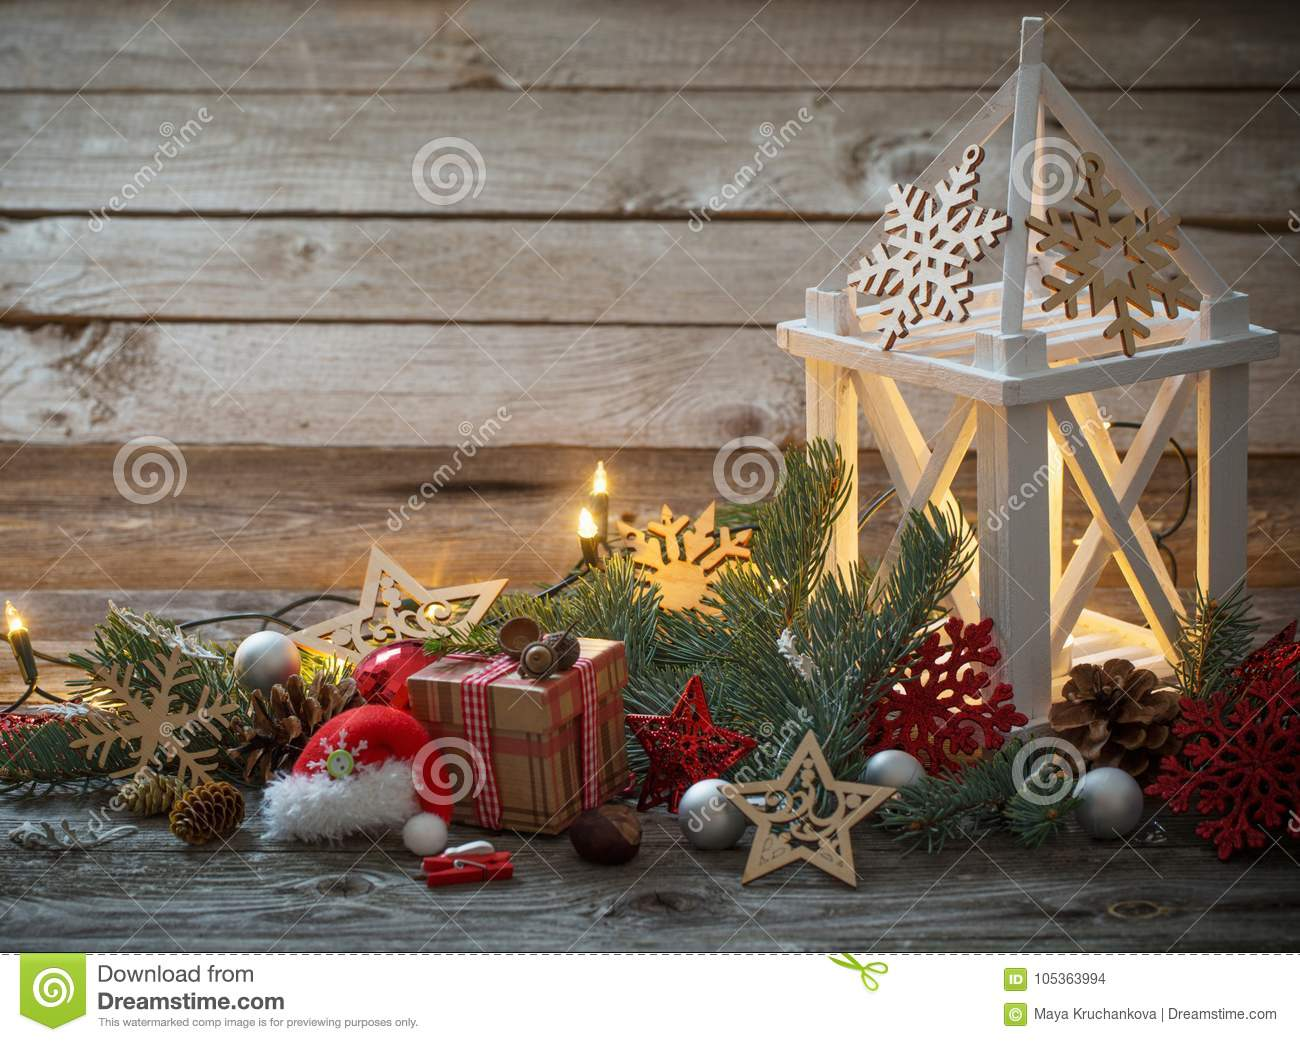 download christmas decoration with white lantern stock photo image of light greeting 105363994